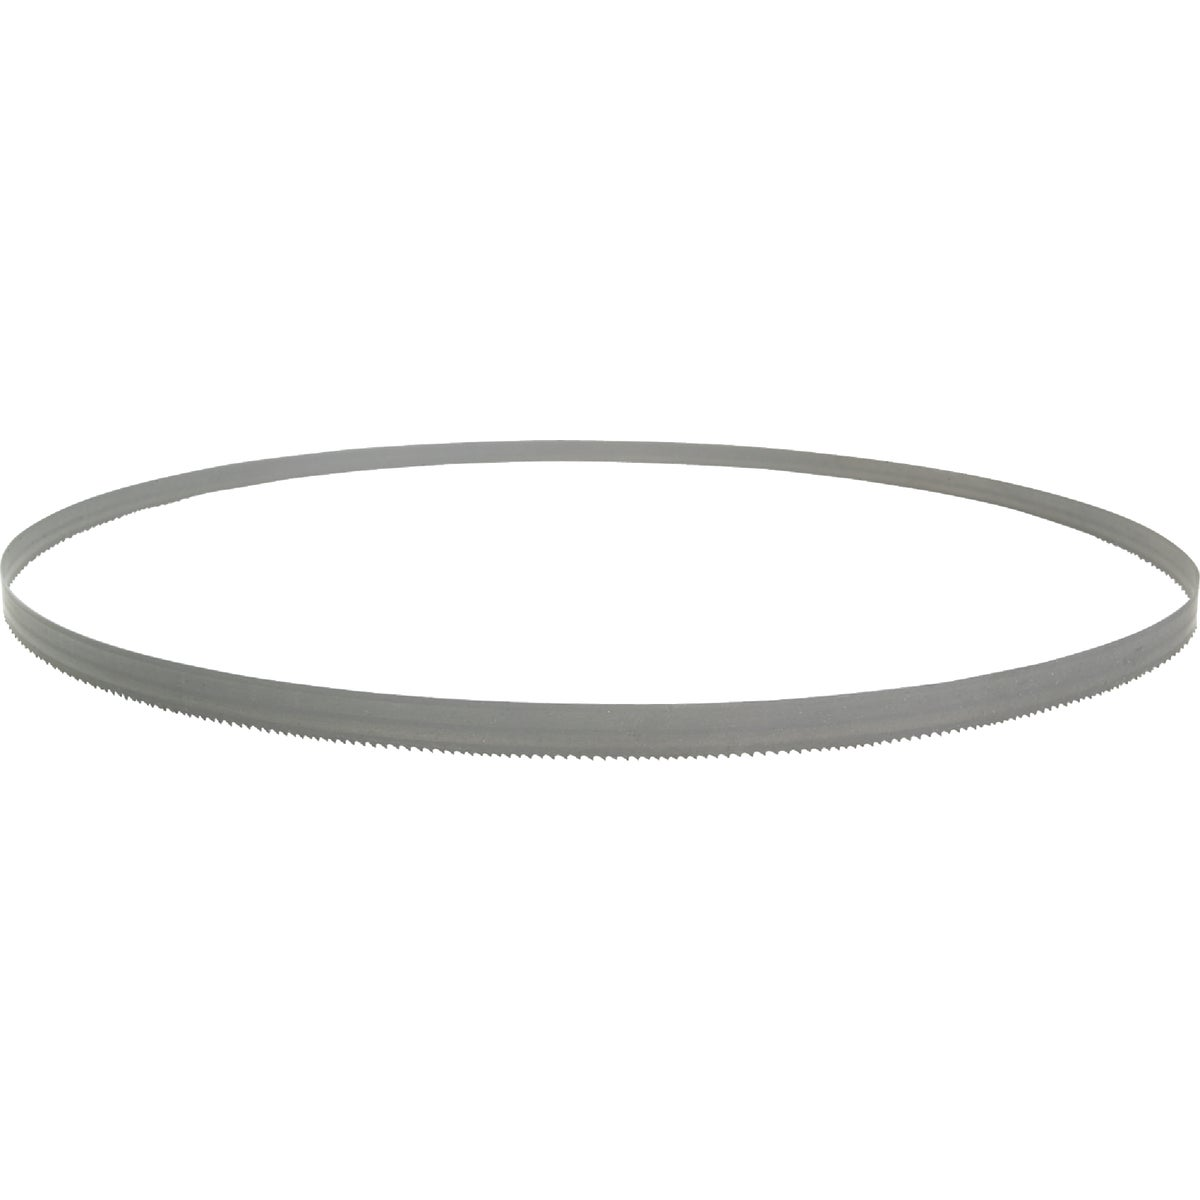 10/14TPI BAND SAW BLADE - 48-39-0550 by Milwaukee Accessory